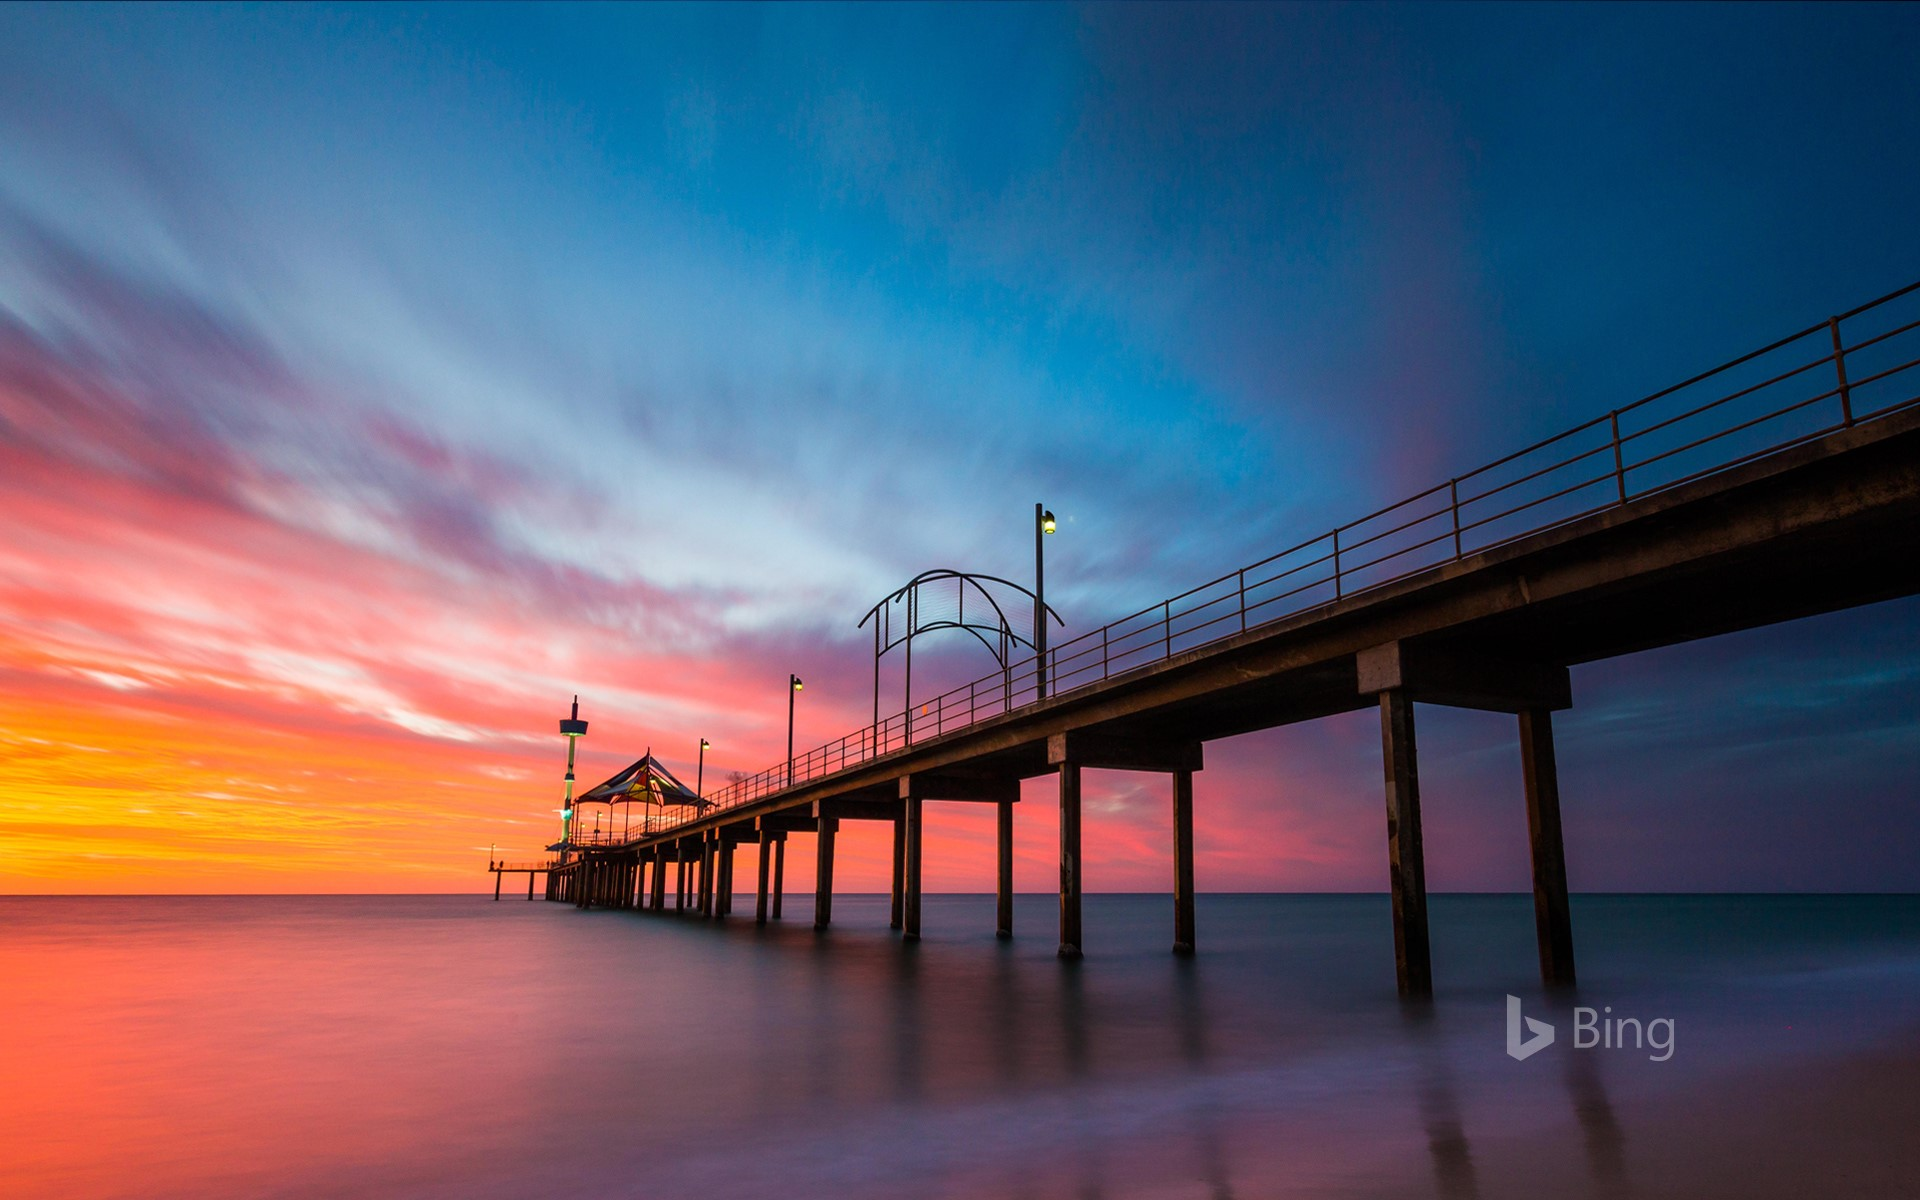 Brighton Jetty in Brighton, Adelaide, Australia